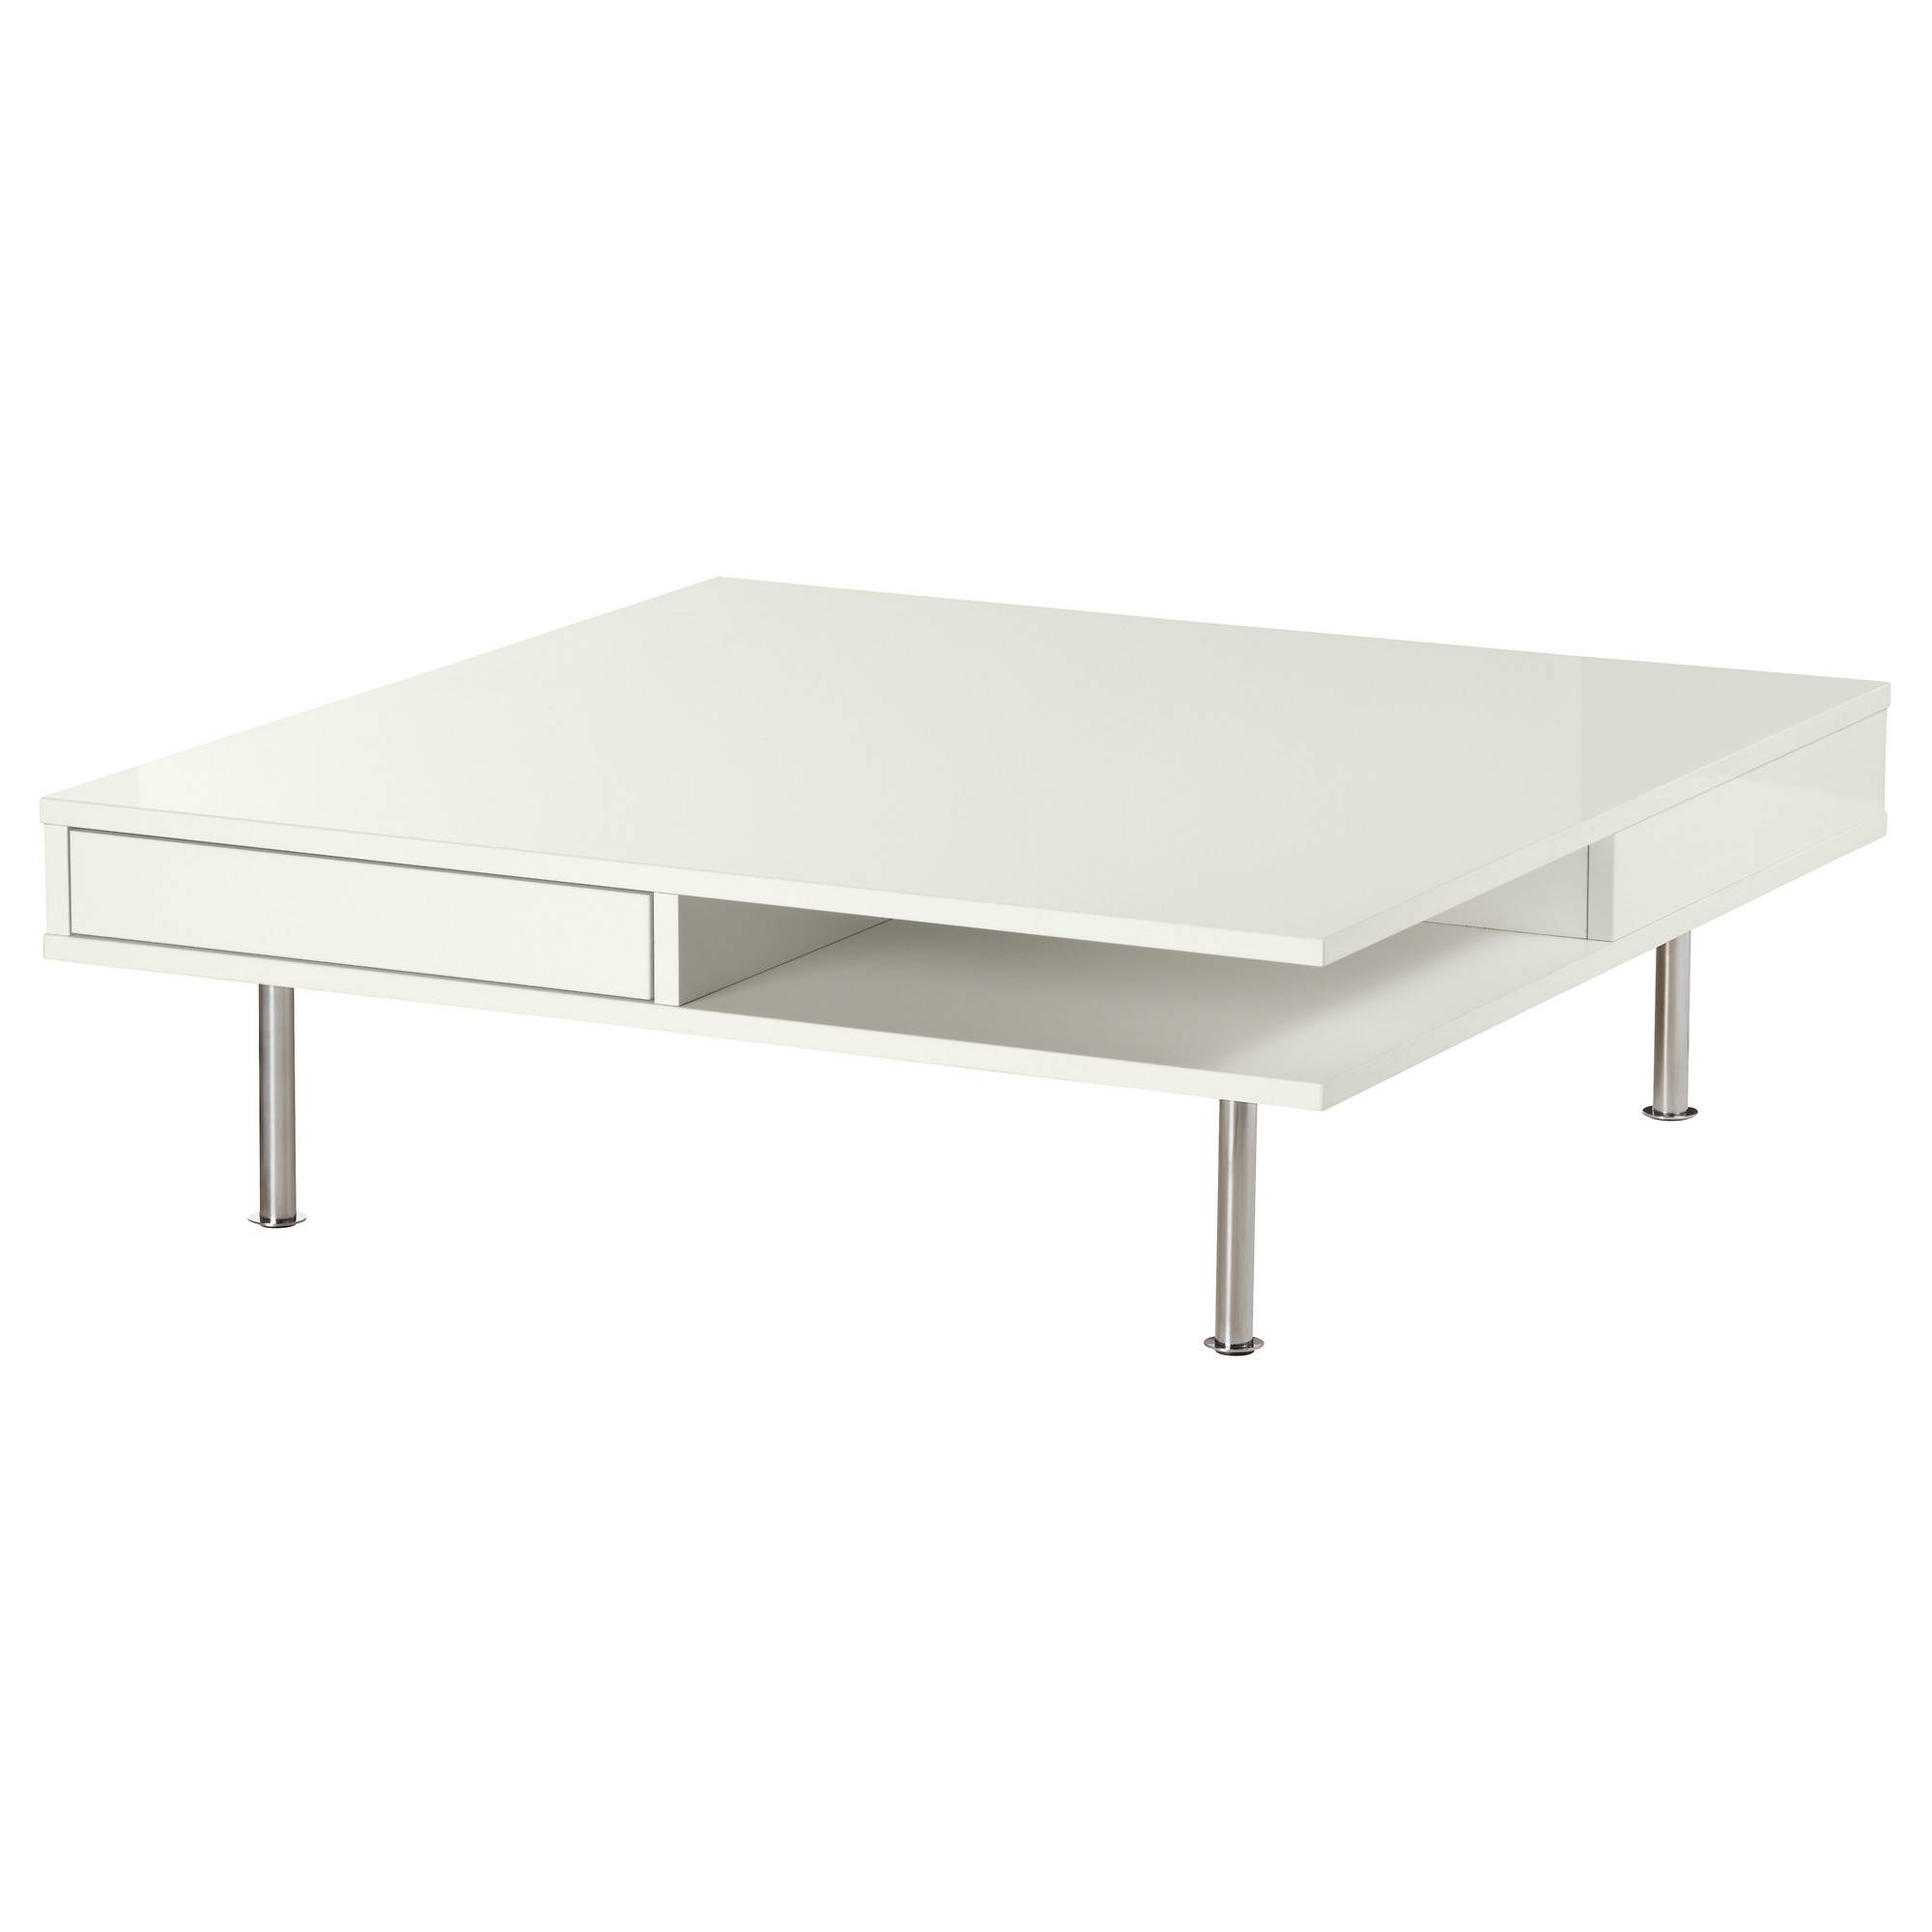 Tofteryd Coffee Table - High Gloss White - Ikea intended for Coffee Tables White High Gloss (Image 27 of 30)